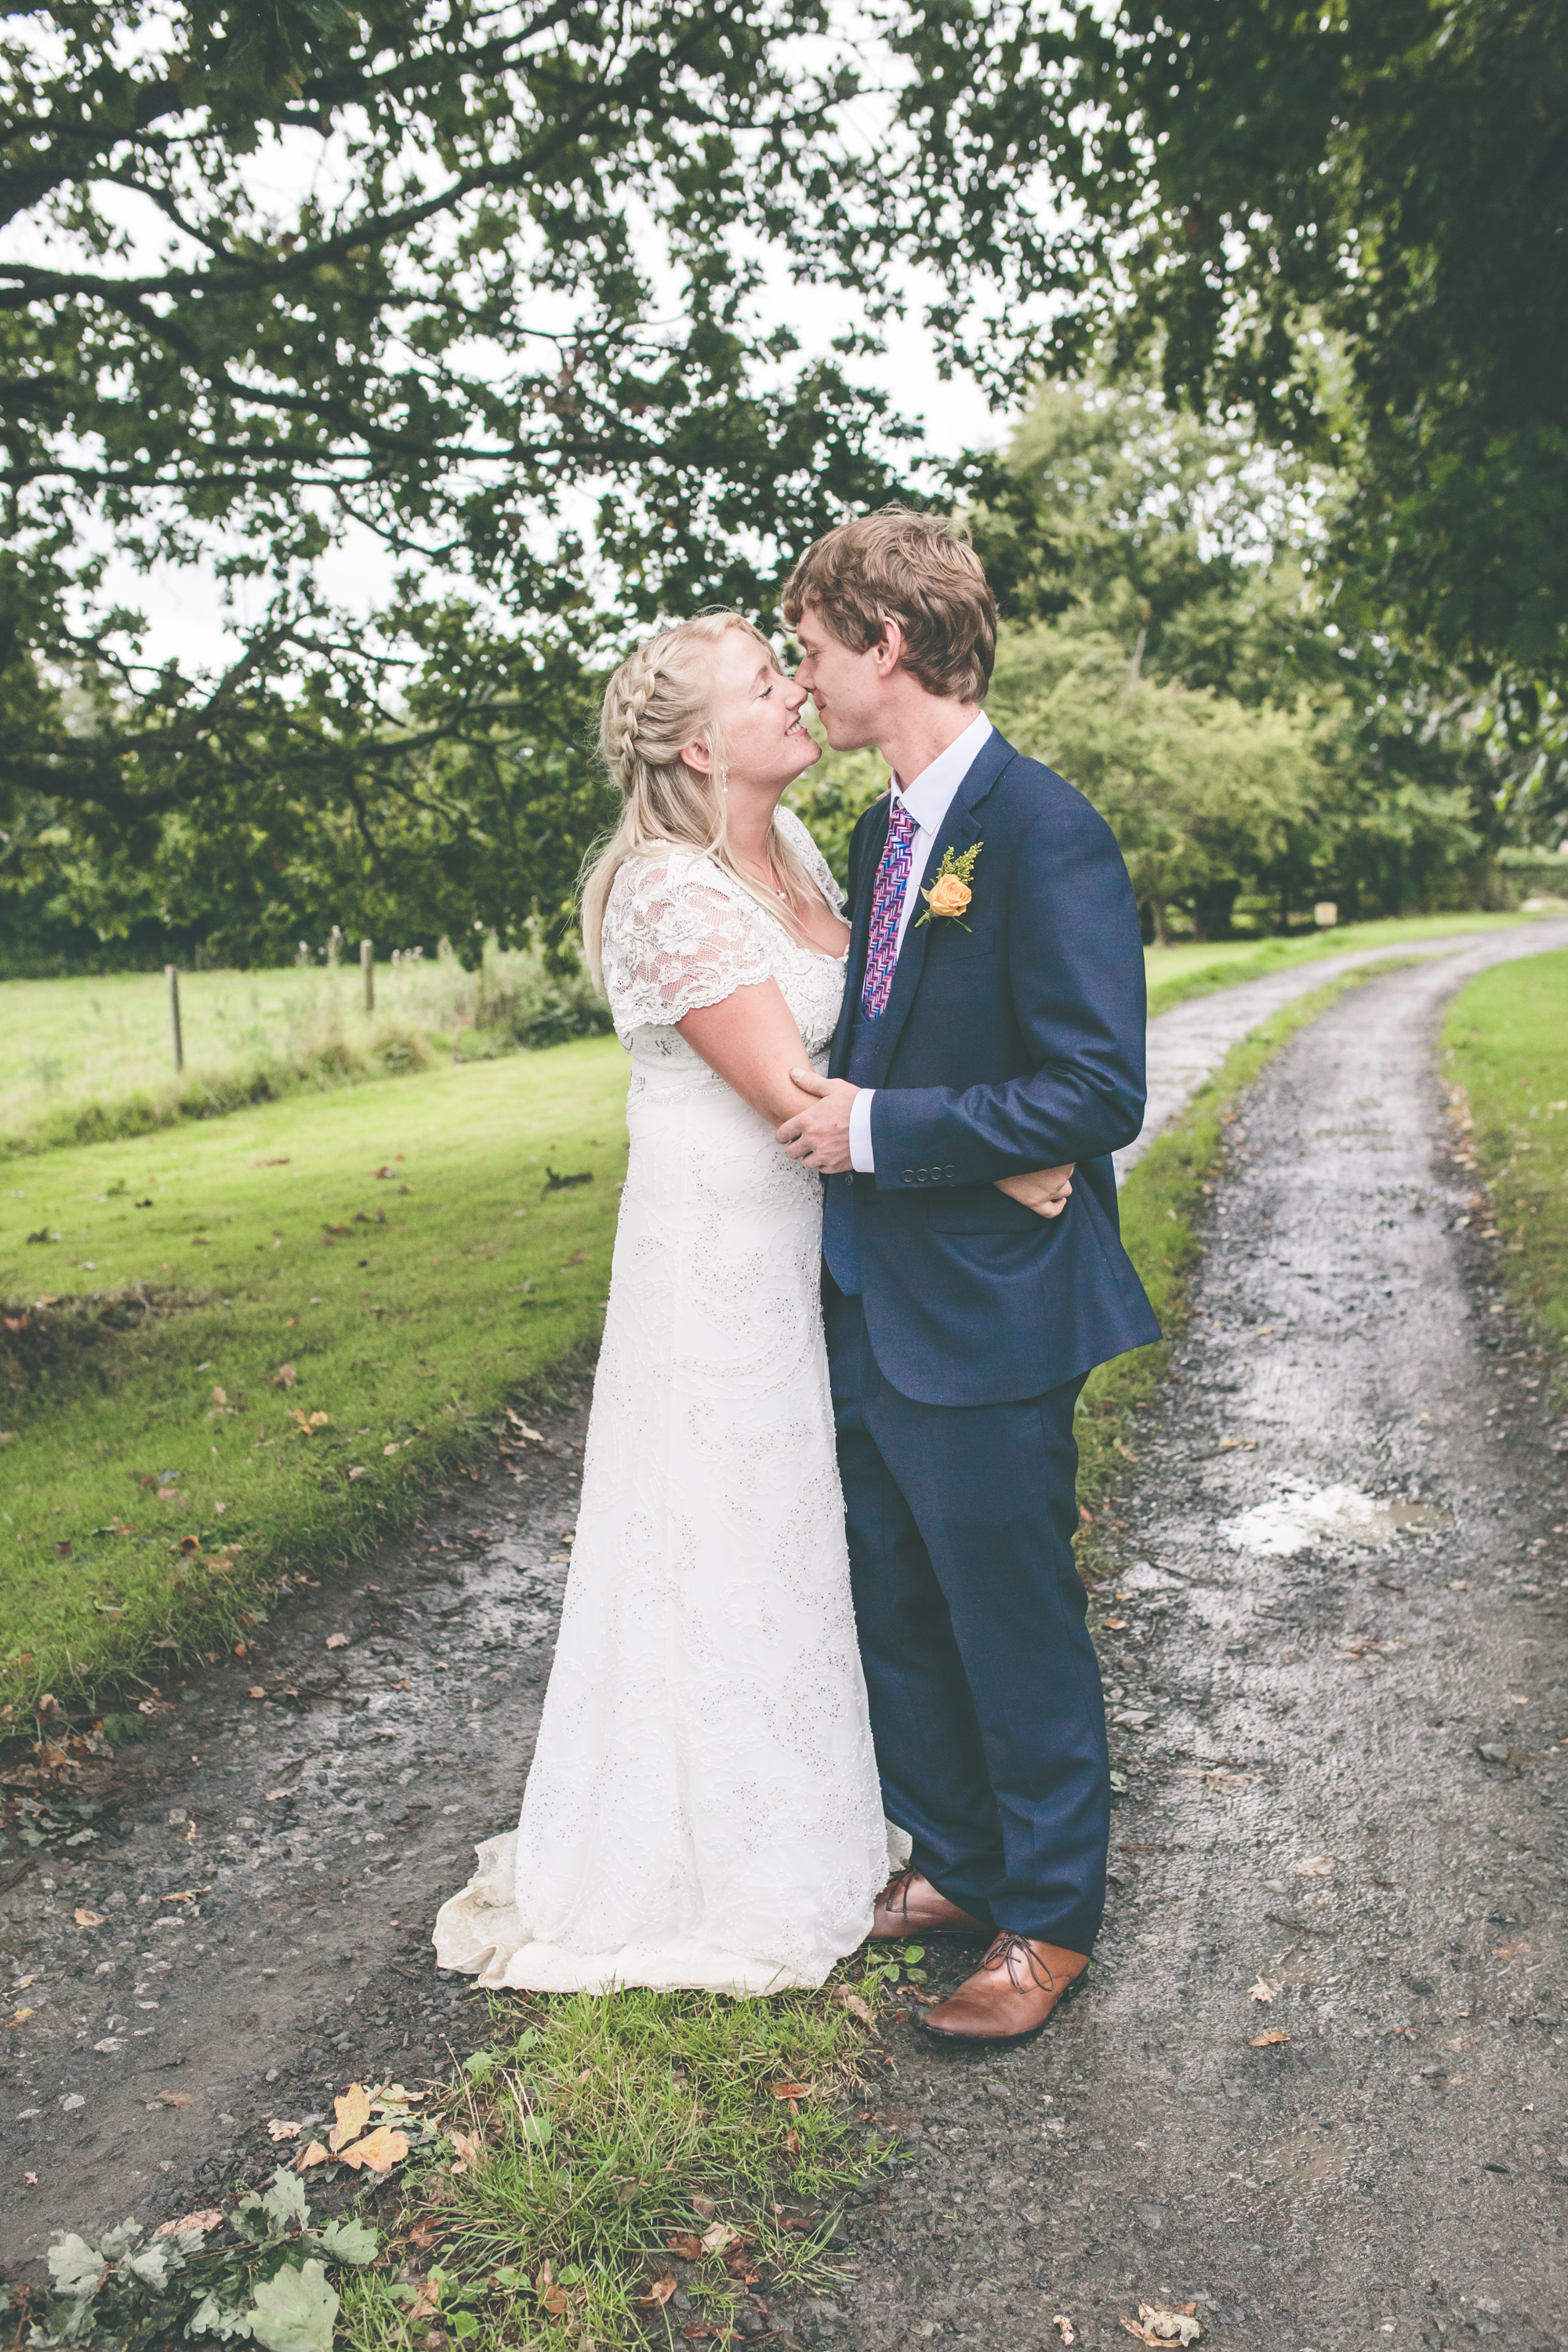 Natural rural wedding portrait